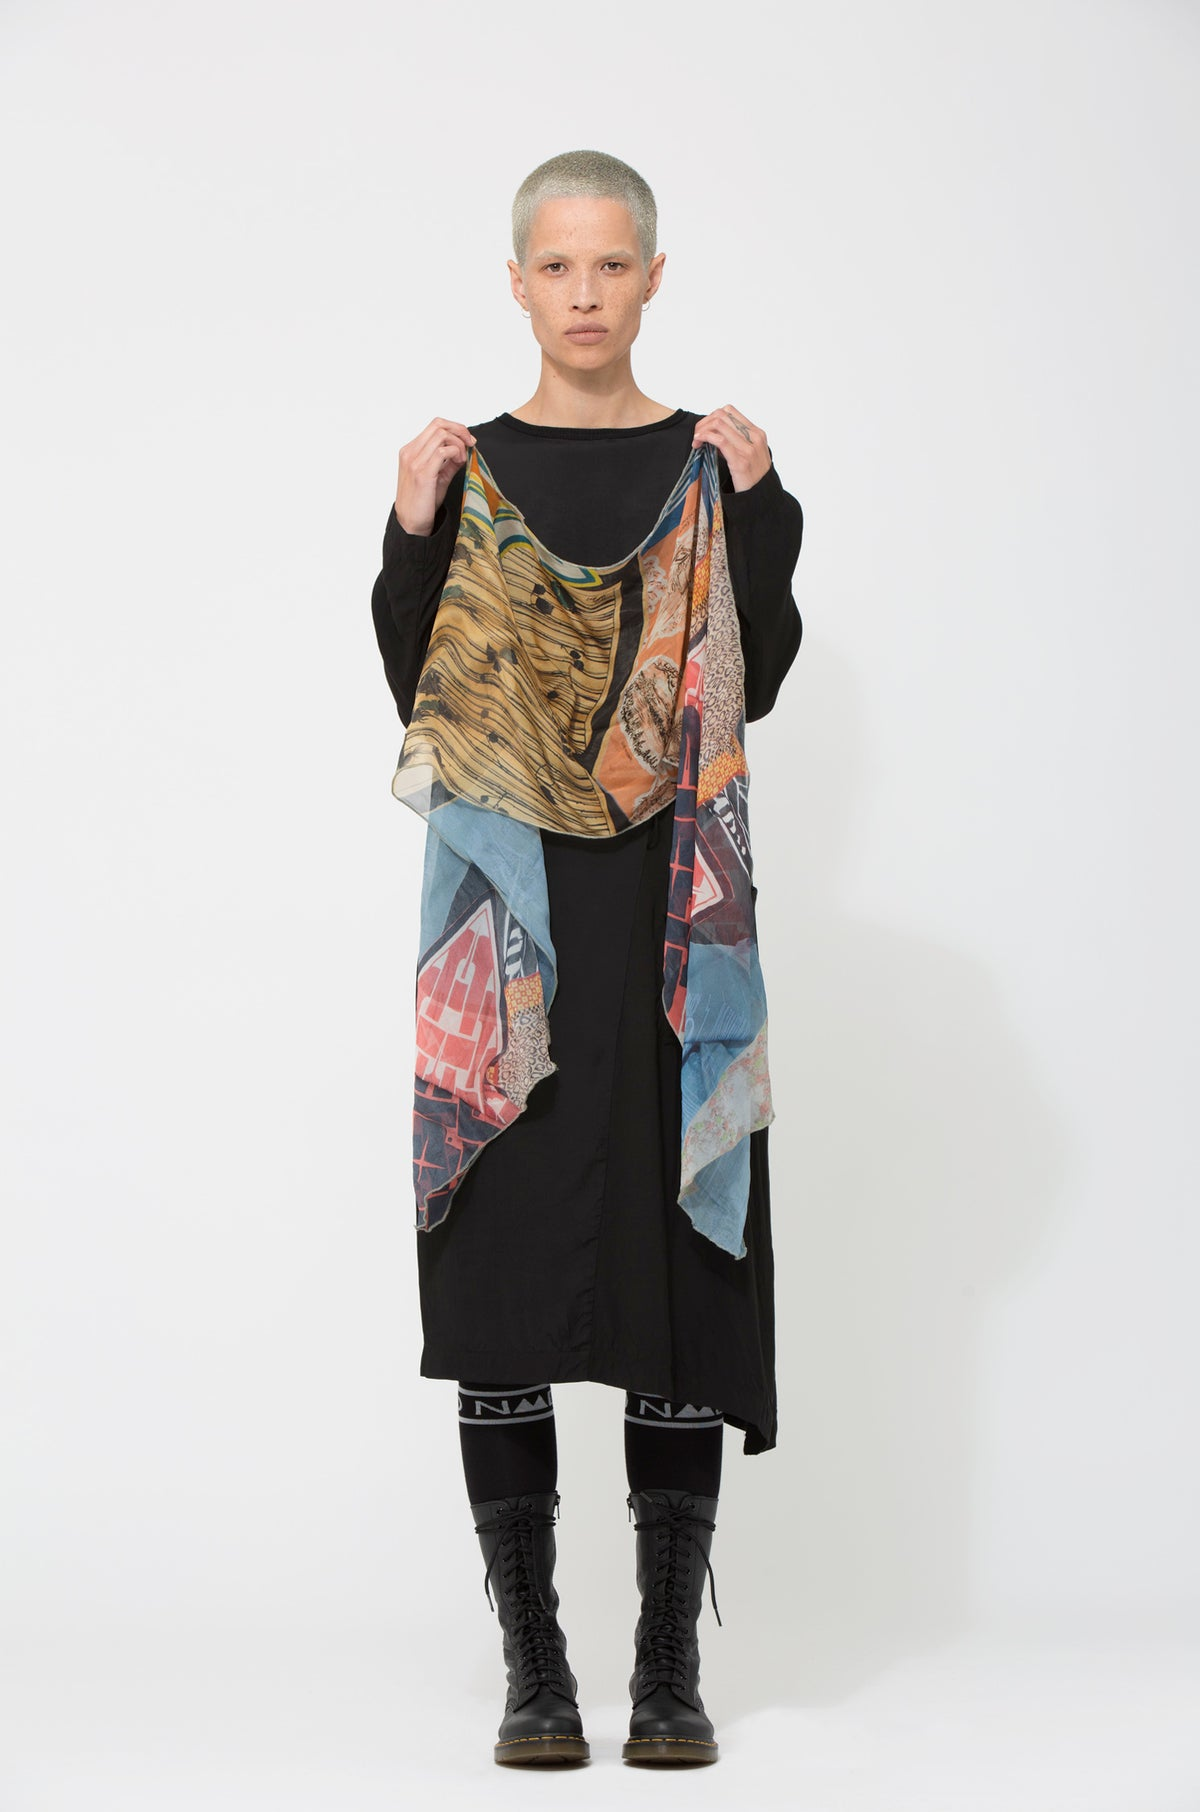 Nom*d Skinny Tie Printed Silk Scarf Shop Online Made in new Zealand NZ Designer Clothing Stockists Auckland Shop Online Parnell Nom d Nomd Dunedin Fashion